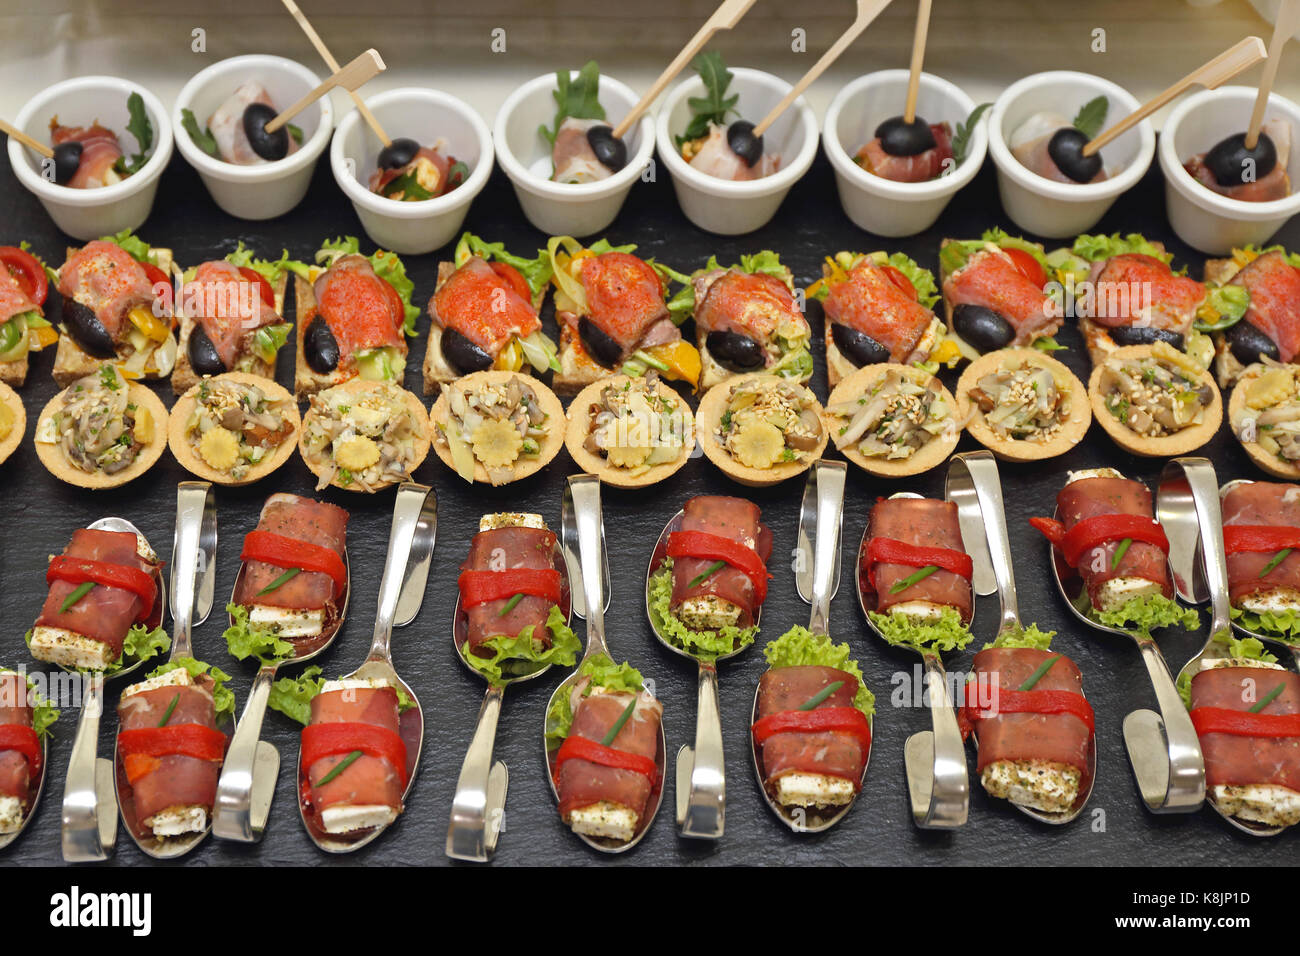 Canape Party Food Served in Bended Spoons - Stock Image